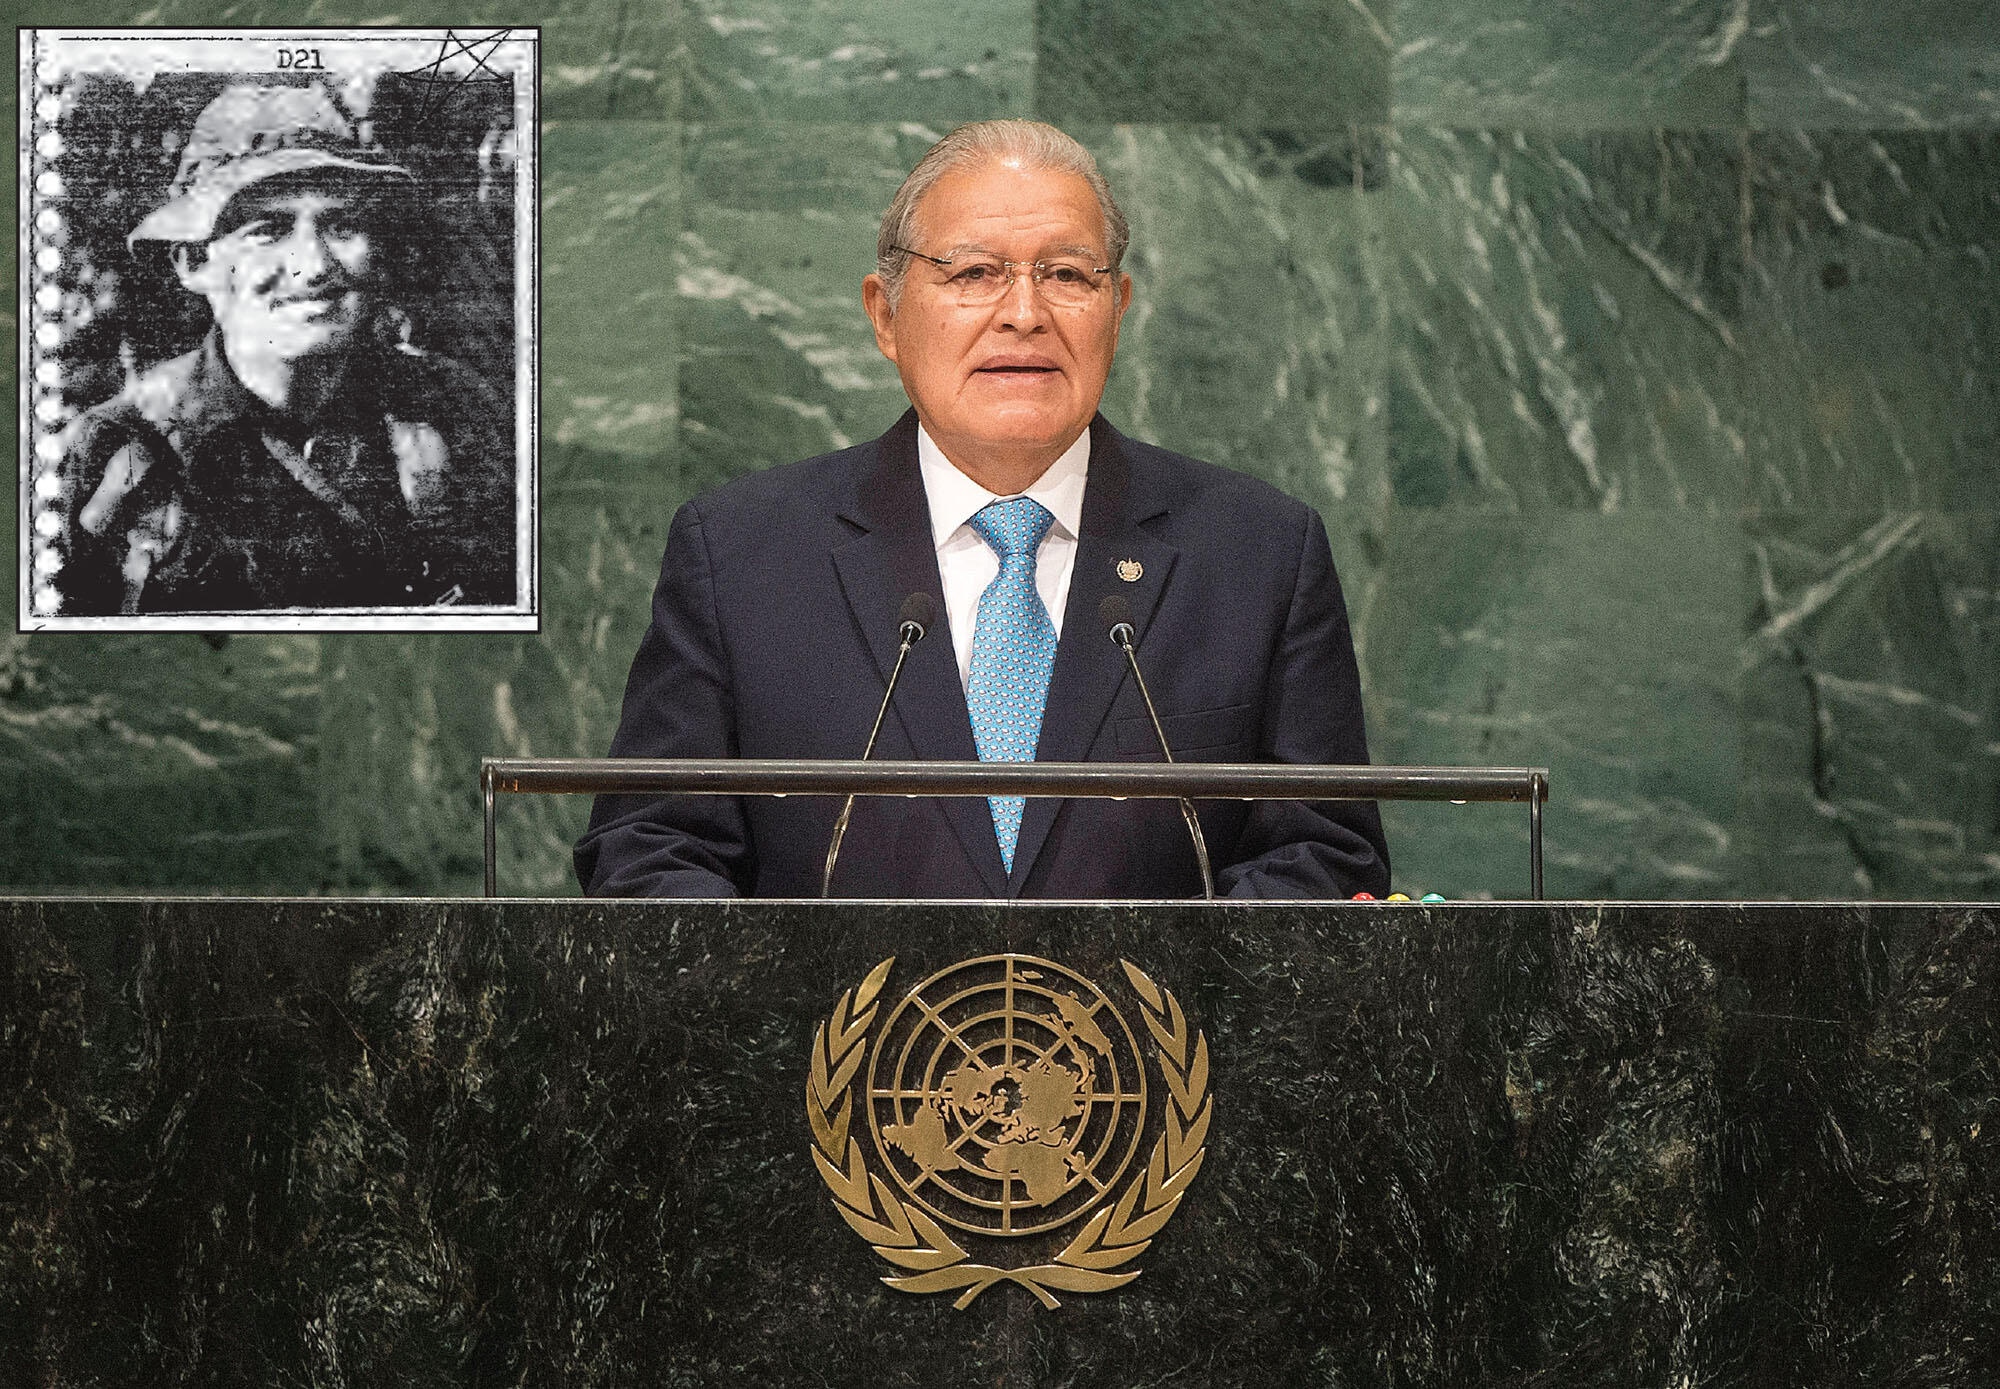 Two photos of Salvador Sánchez Cerén, as the current president of El Salvador speaking from the dais at the United Nations and (inset) in the Yellow Book. (Photo courtesy of Presidencia de El Salvador and inset courtesy of Angelina Snodgrass Godoy.)